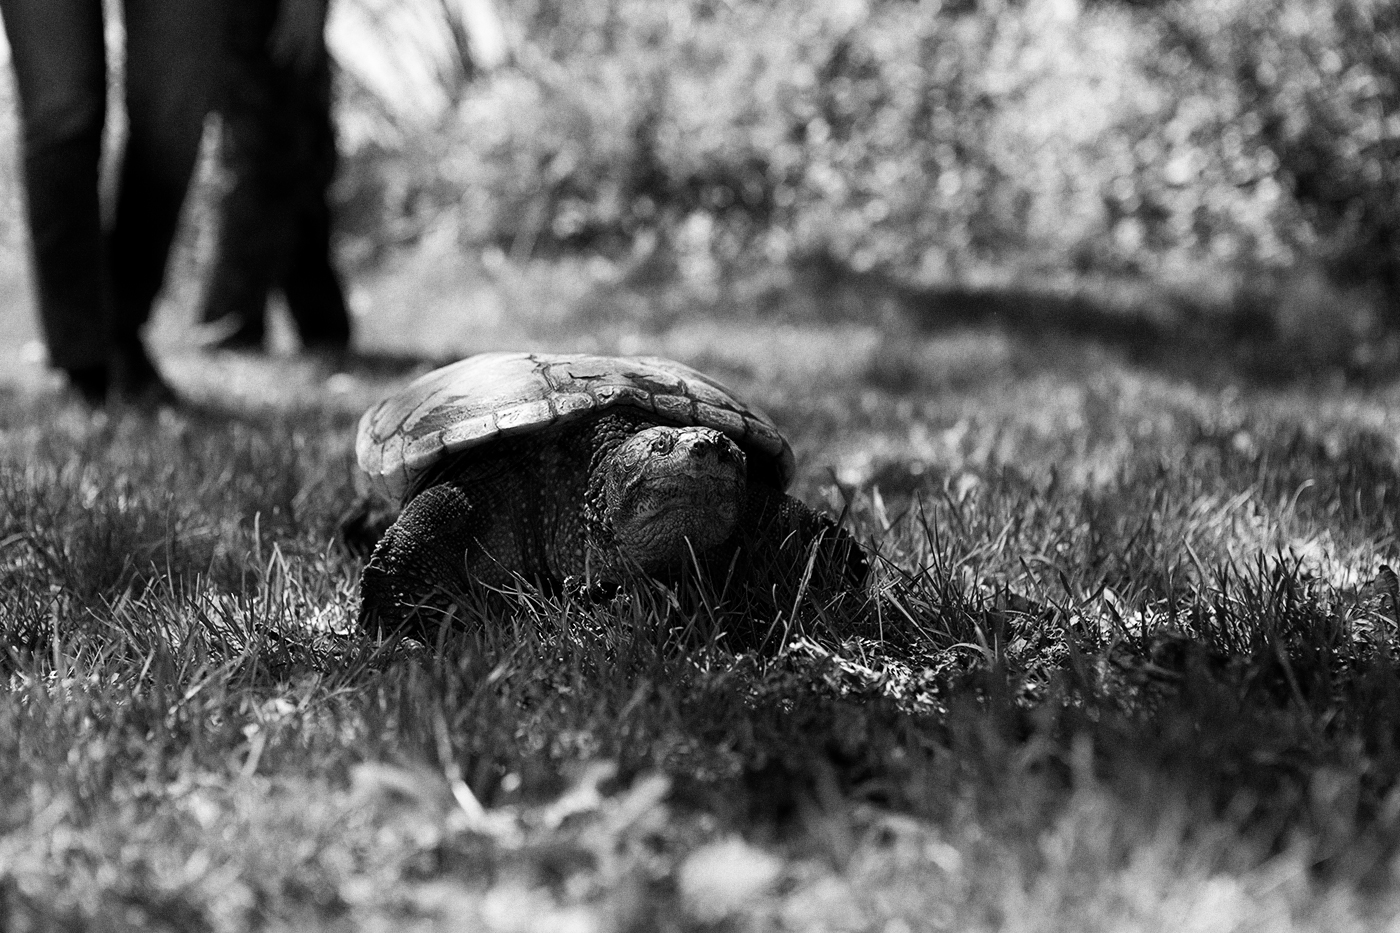 A snapping turtle in the grass.